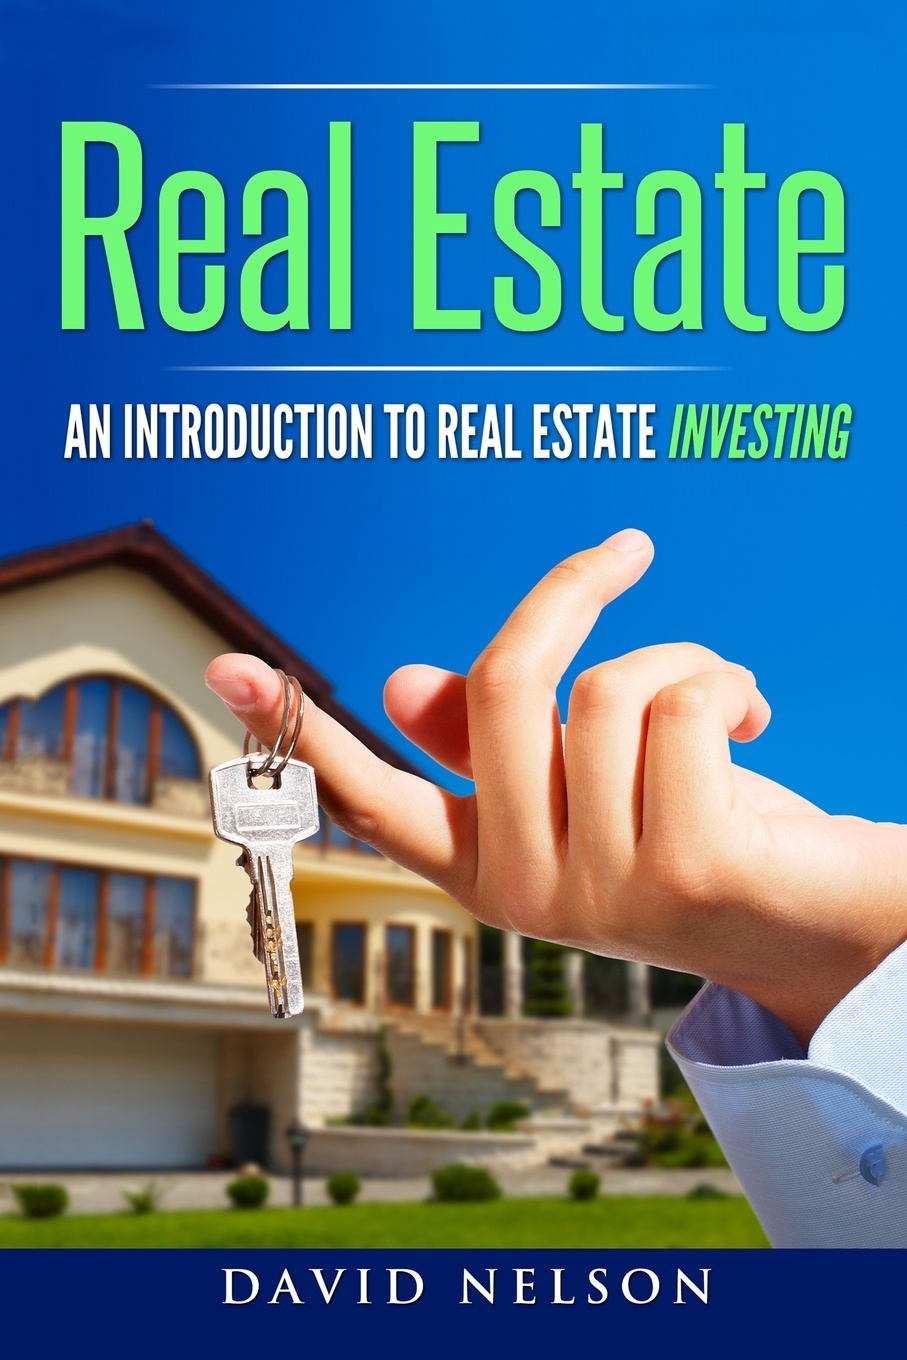 David Nelson Real Estate. An Introduction to Real Estate Investing tyler hicks g 209 fast spare time ways to build zero cash into 7 figures a year in real estate